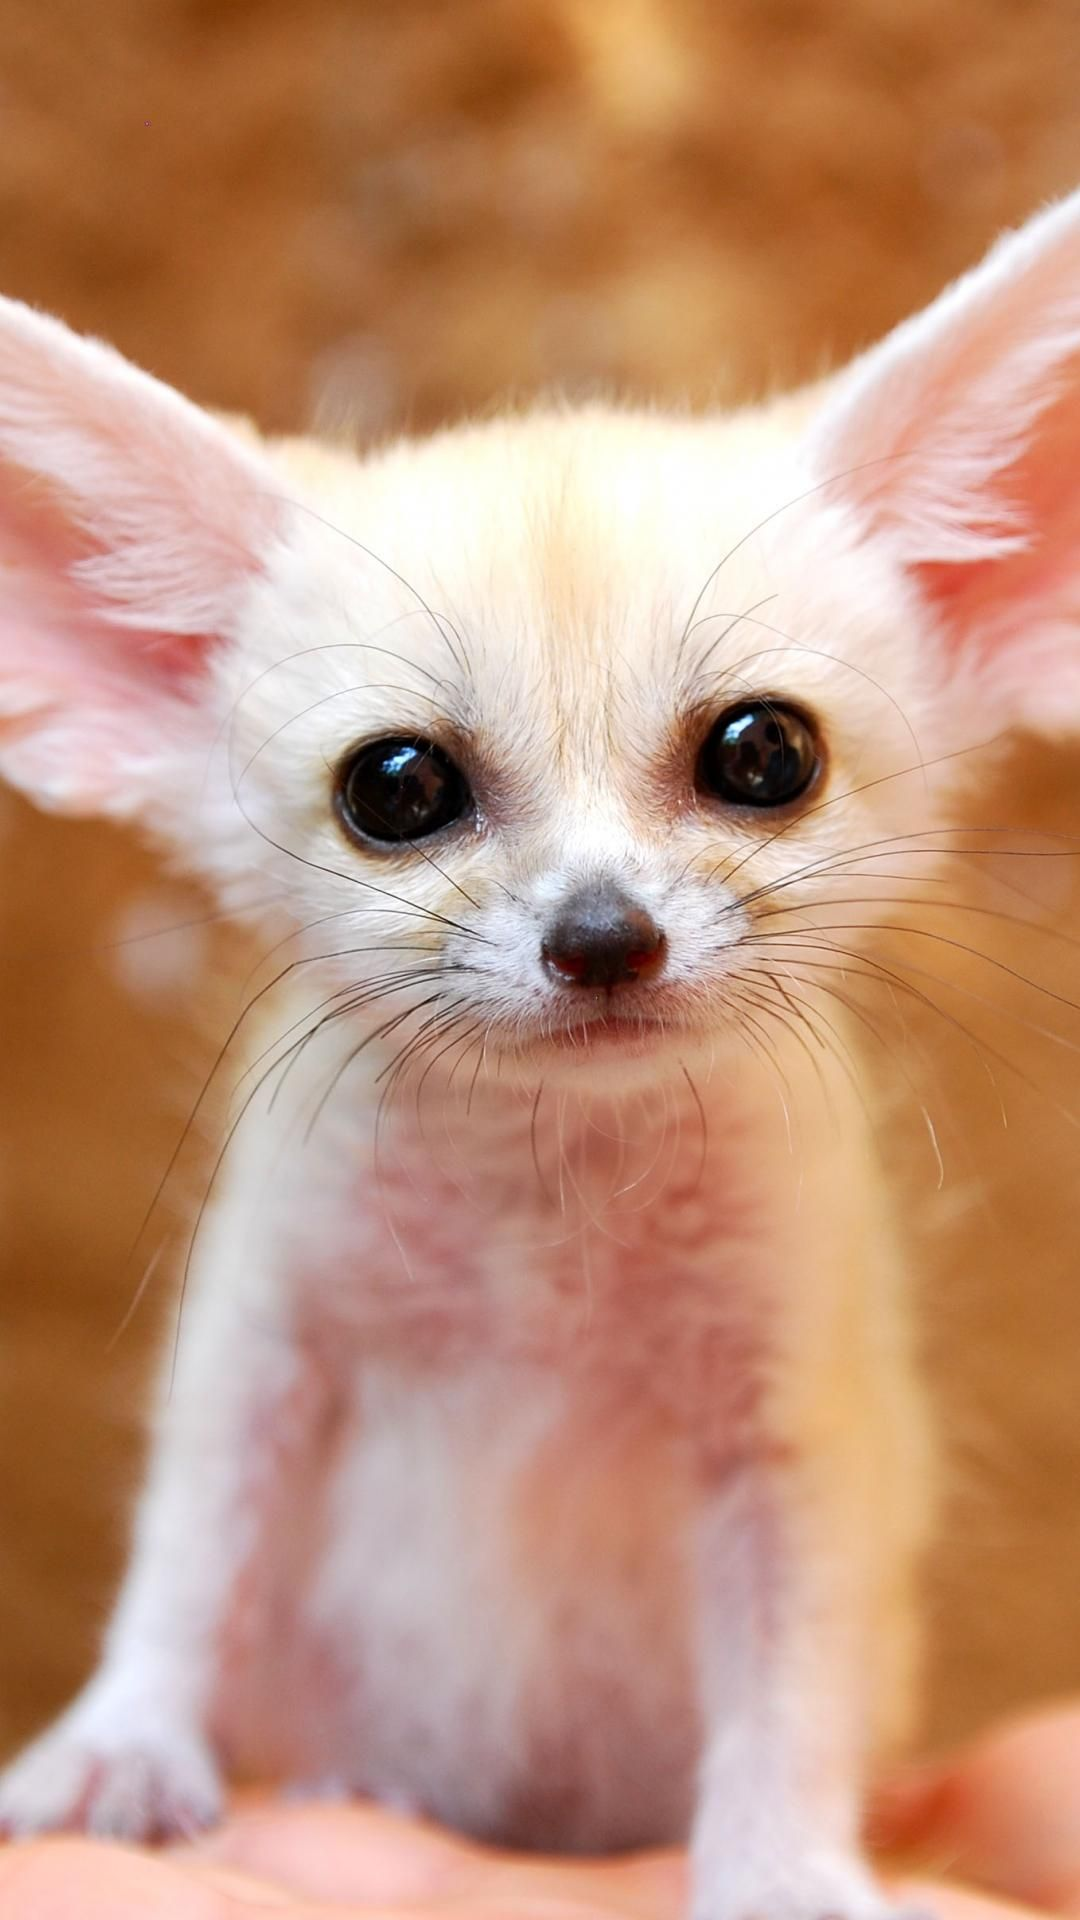 Full Grown Fennec Fox wallpaper. … Cute animals, Cute